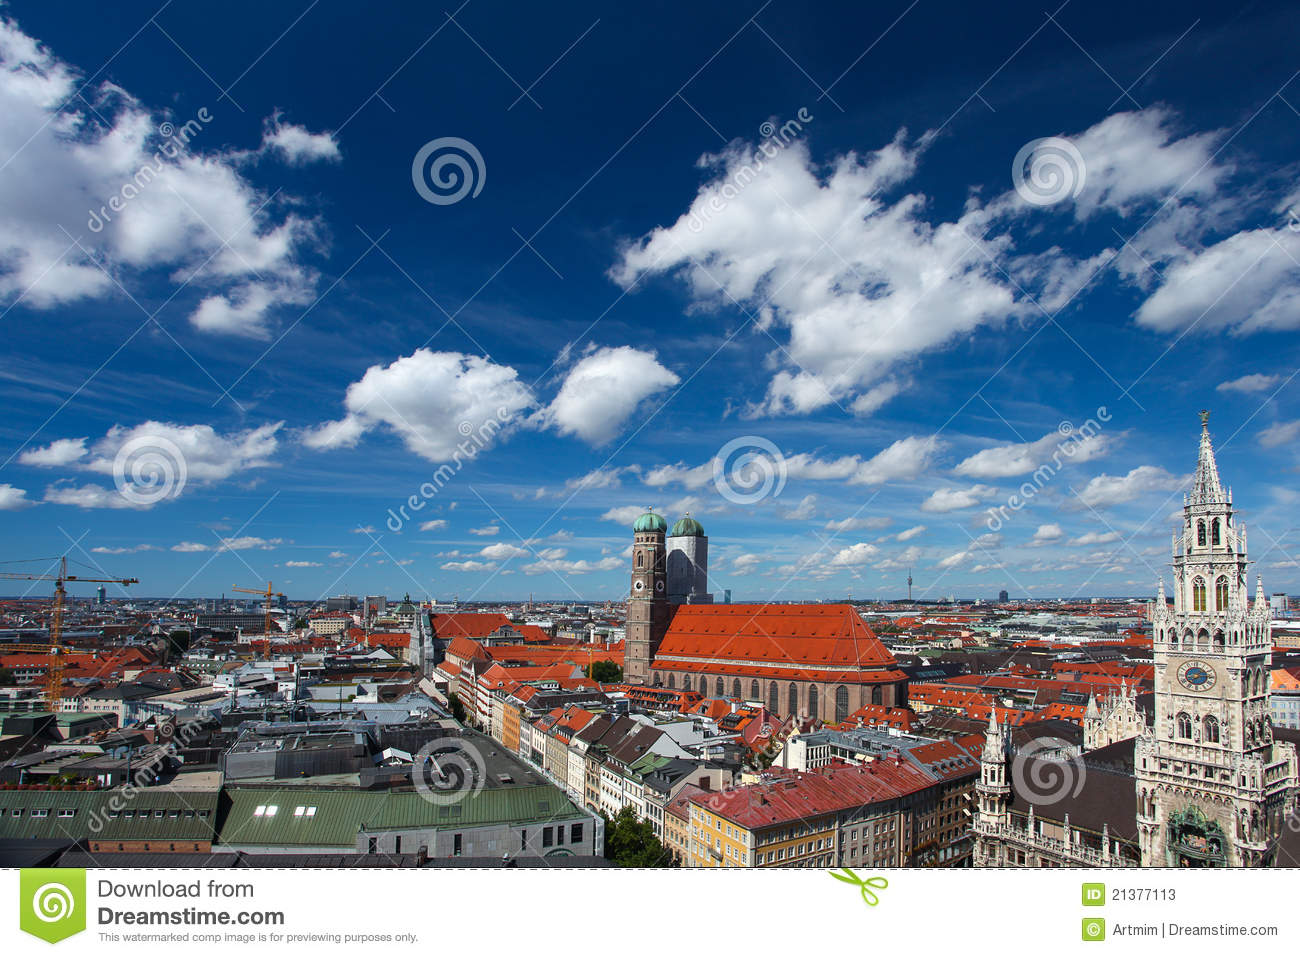 Historic B&W photos of Munich, Bavaria, Germany in the 19th ...